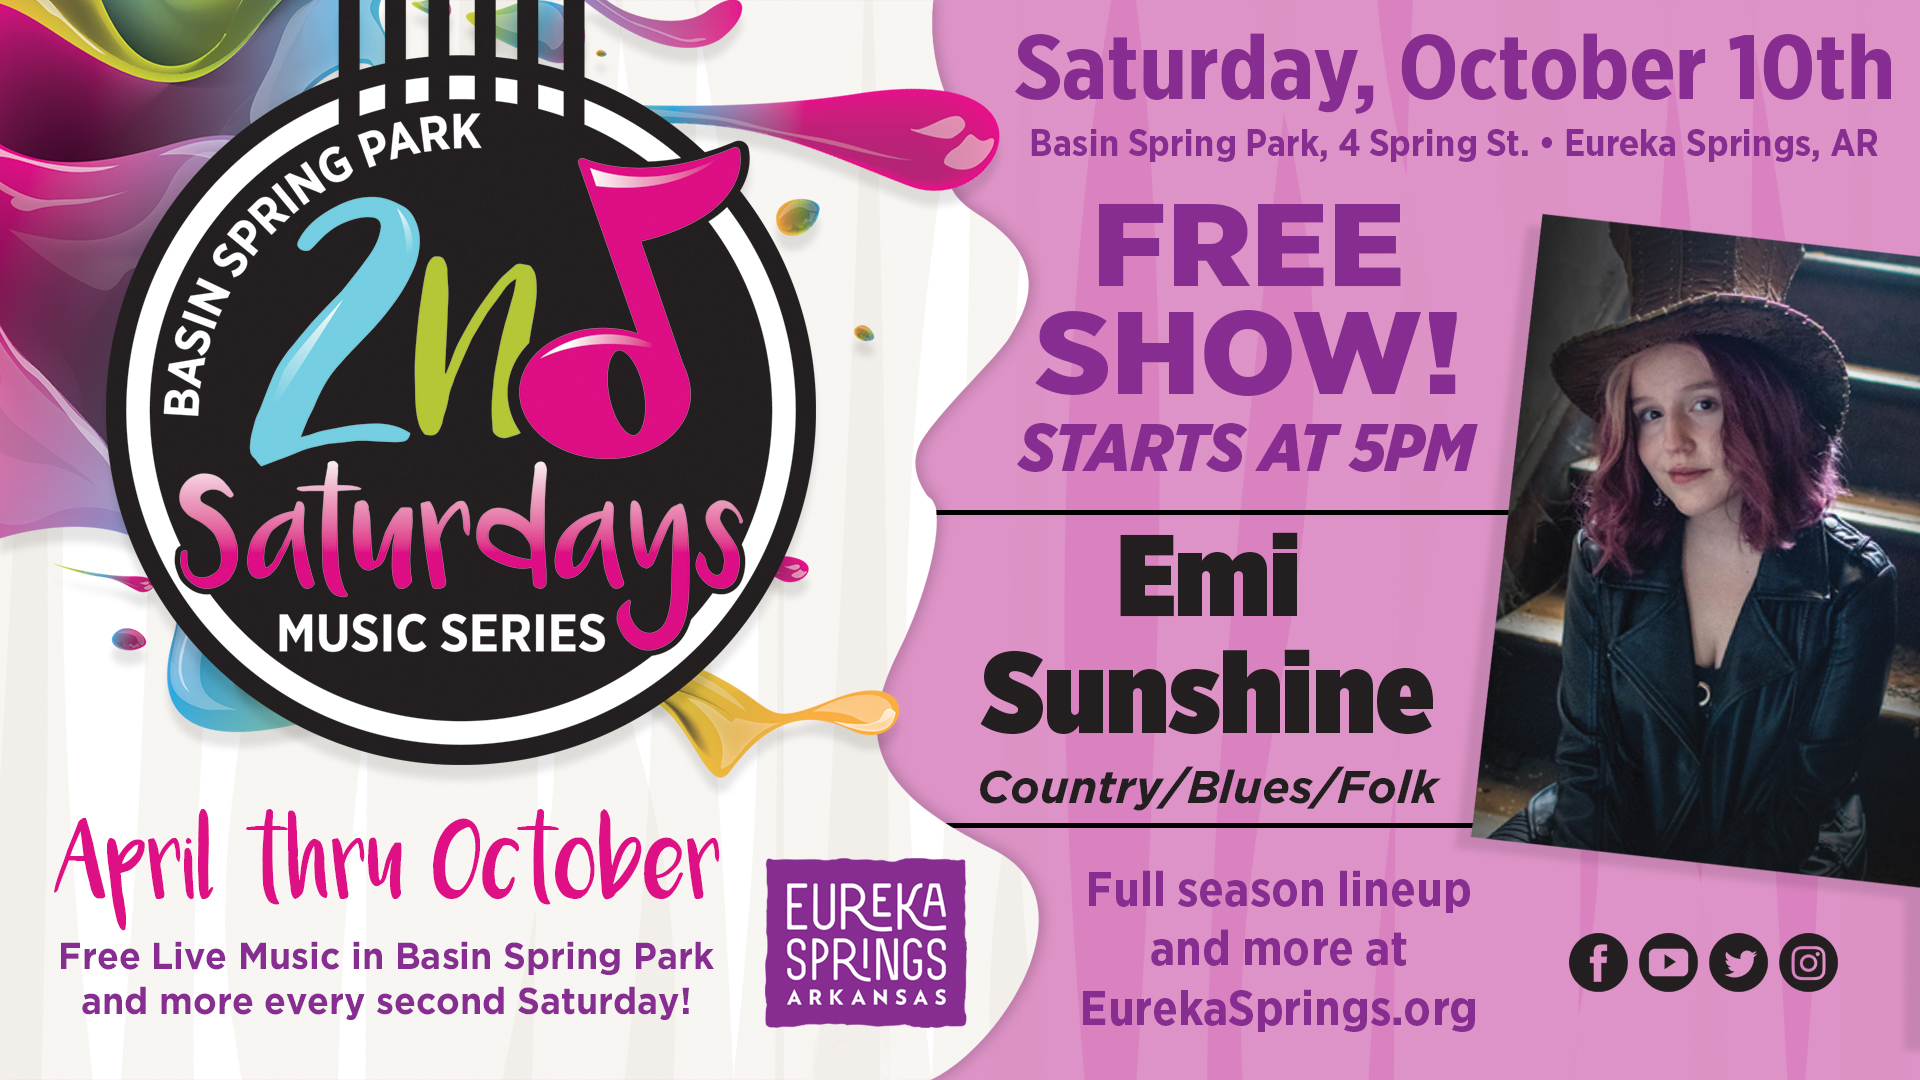 Second Saturday Music in Eureka springs with Emi Sunshine